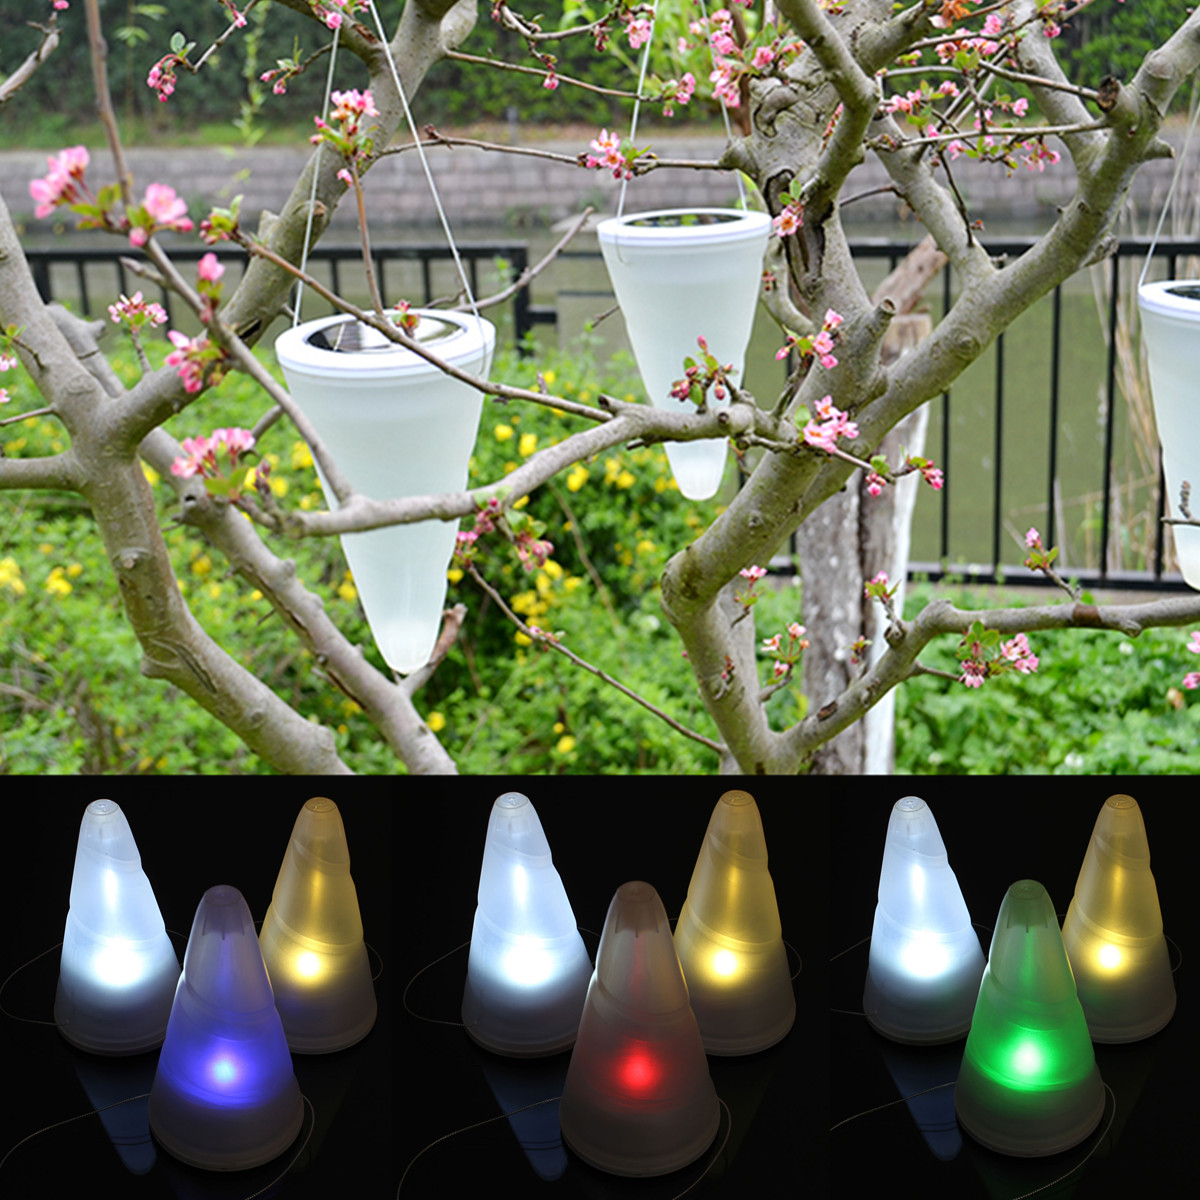 Solar Patio Lights Hanging: Solar Power Garden Lights Outdoor Cornet Cone LED Lamp